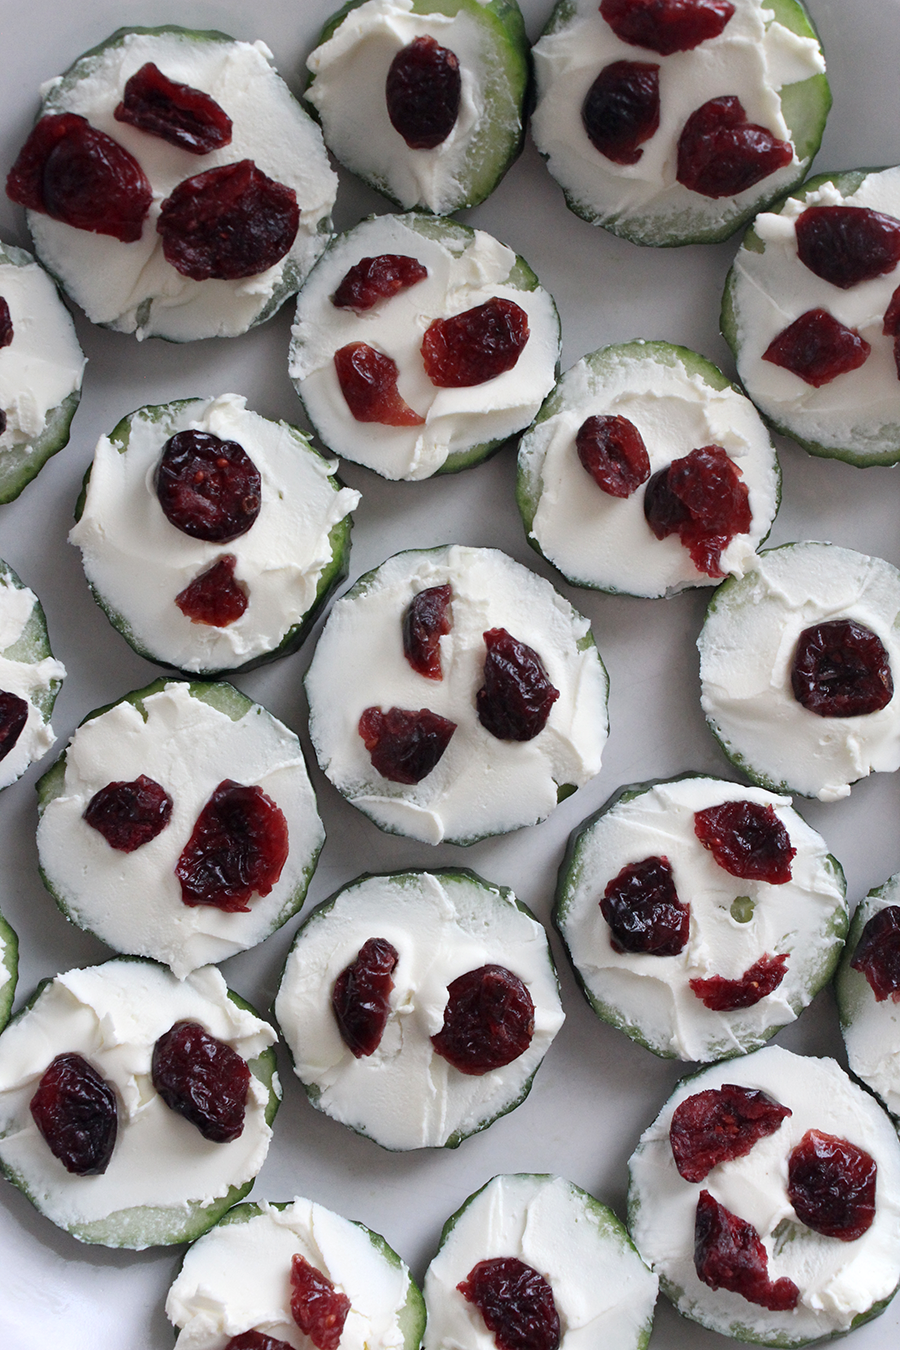 Cucumber cream cheese and dried cranberries appetizer idea for parties or snacks.